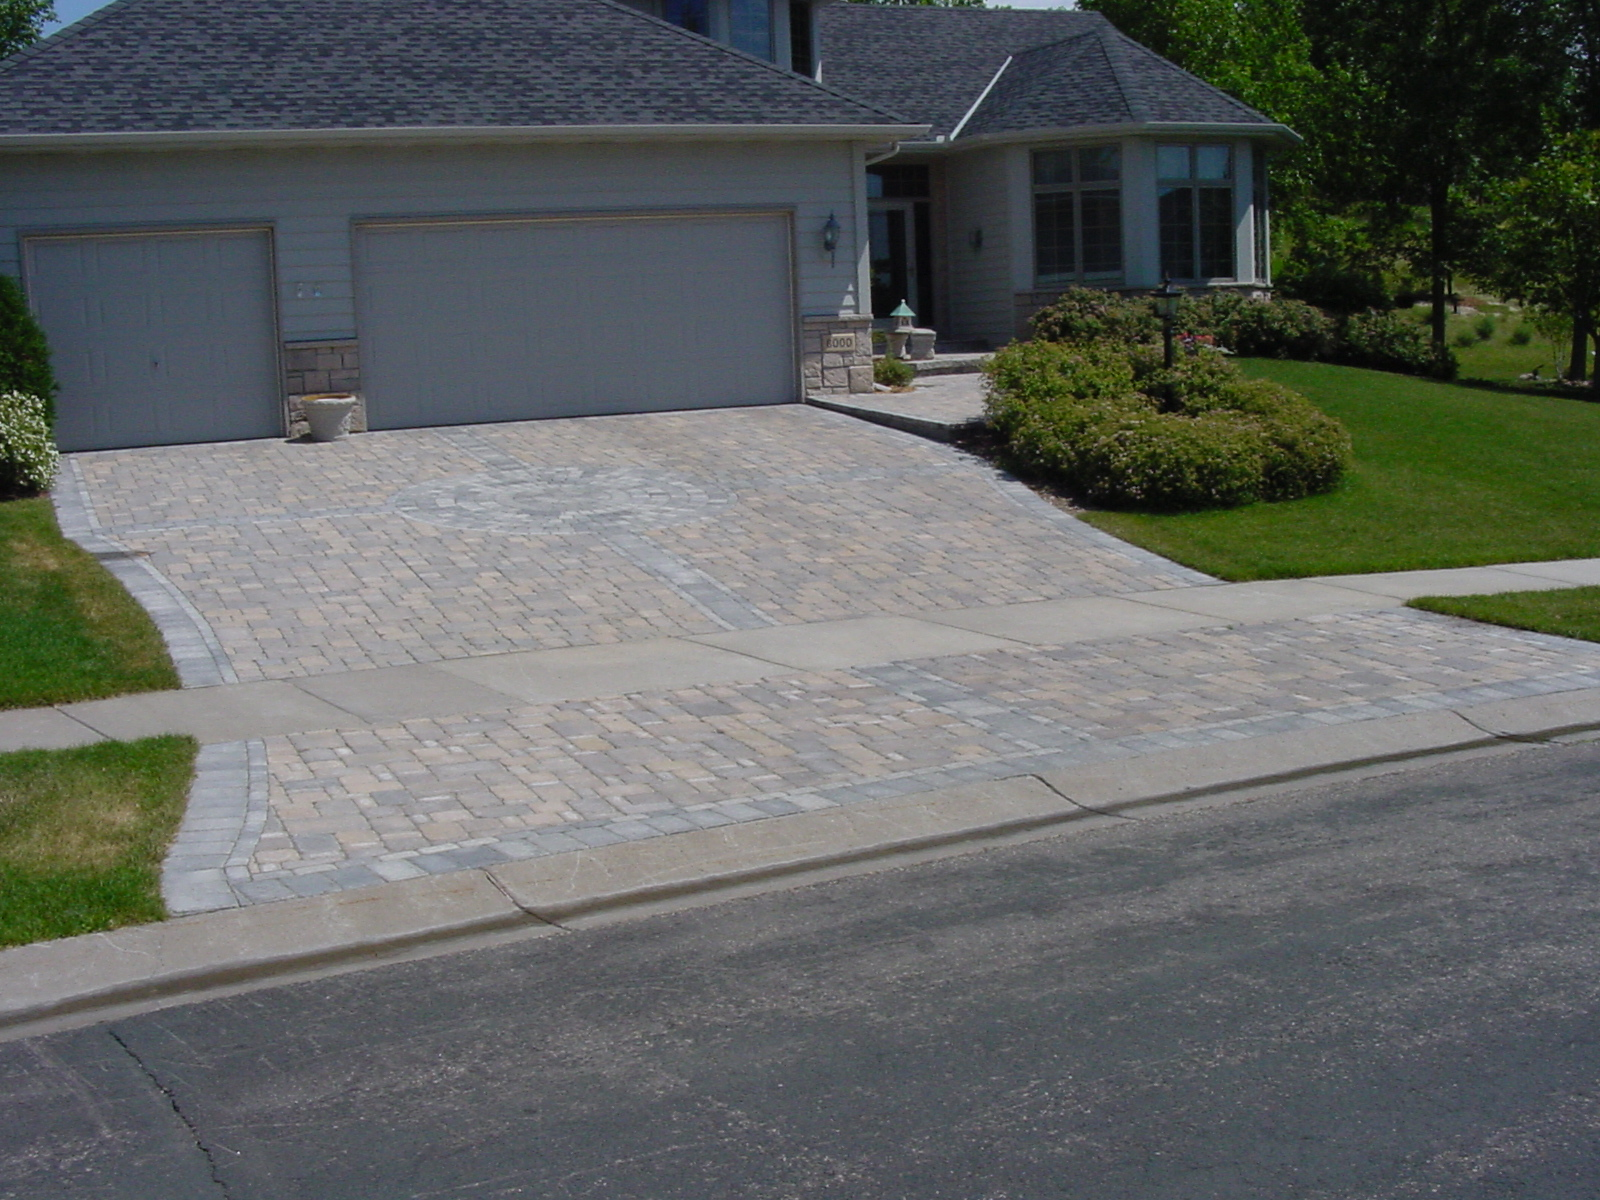 download new concrete driveway design ideas home - Concrete Driveway Design Ideas